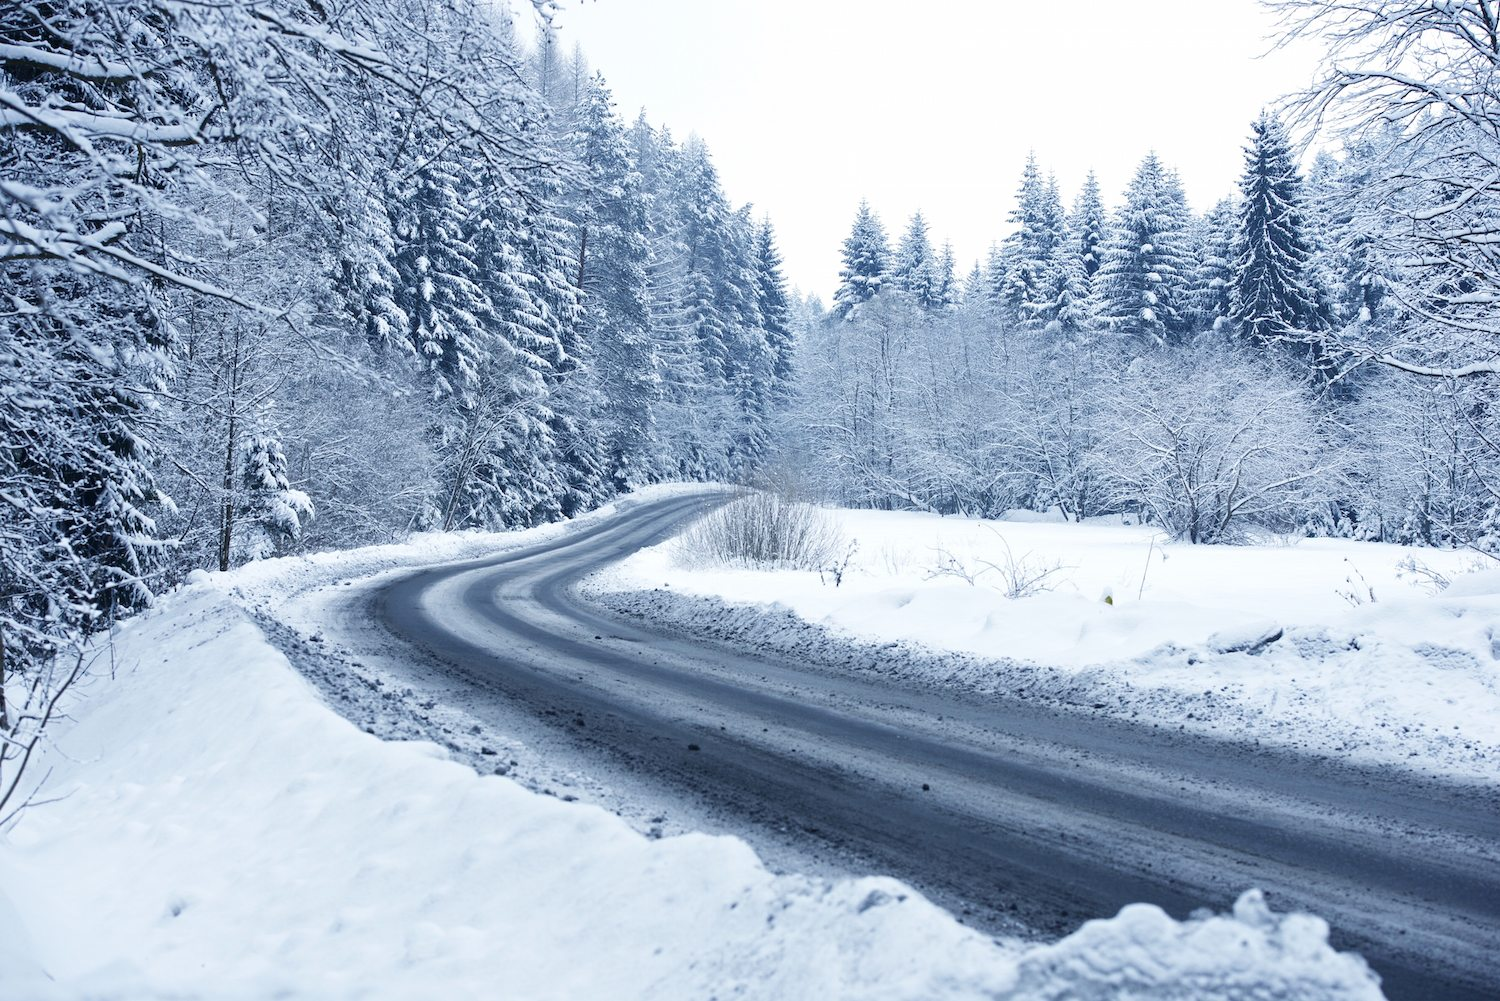 Checklist to Prepare Your Car for Winter Driving